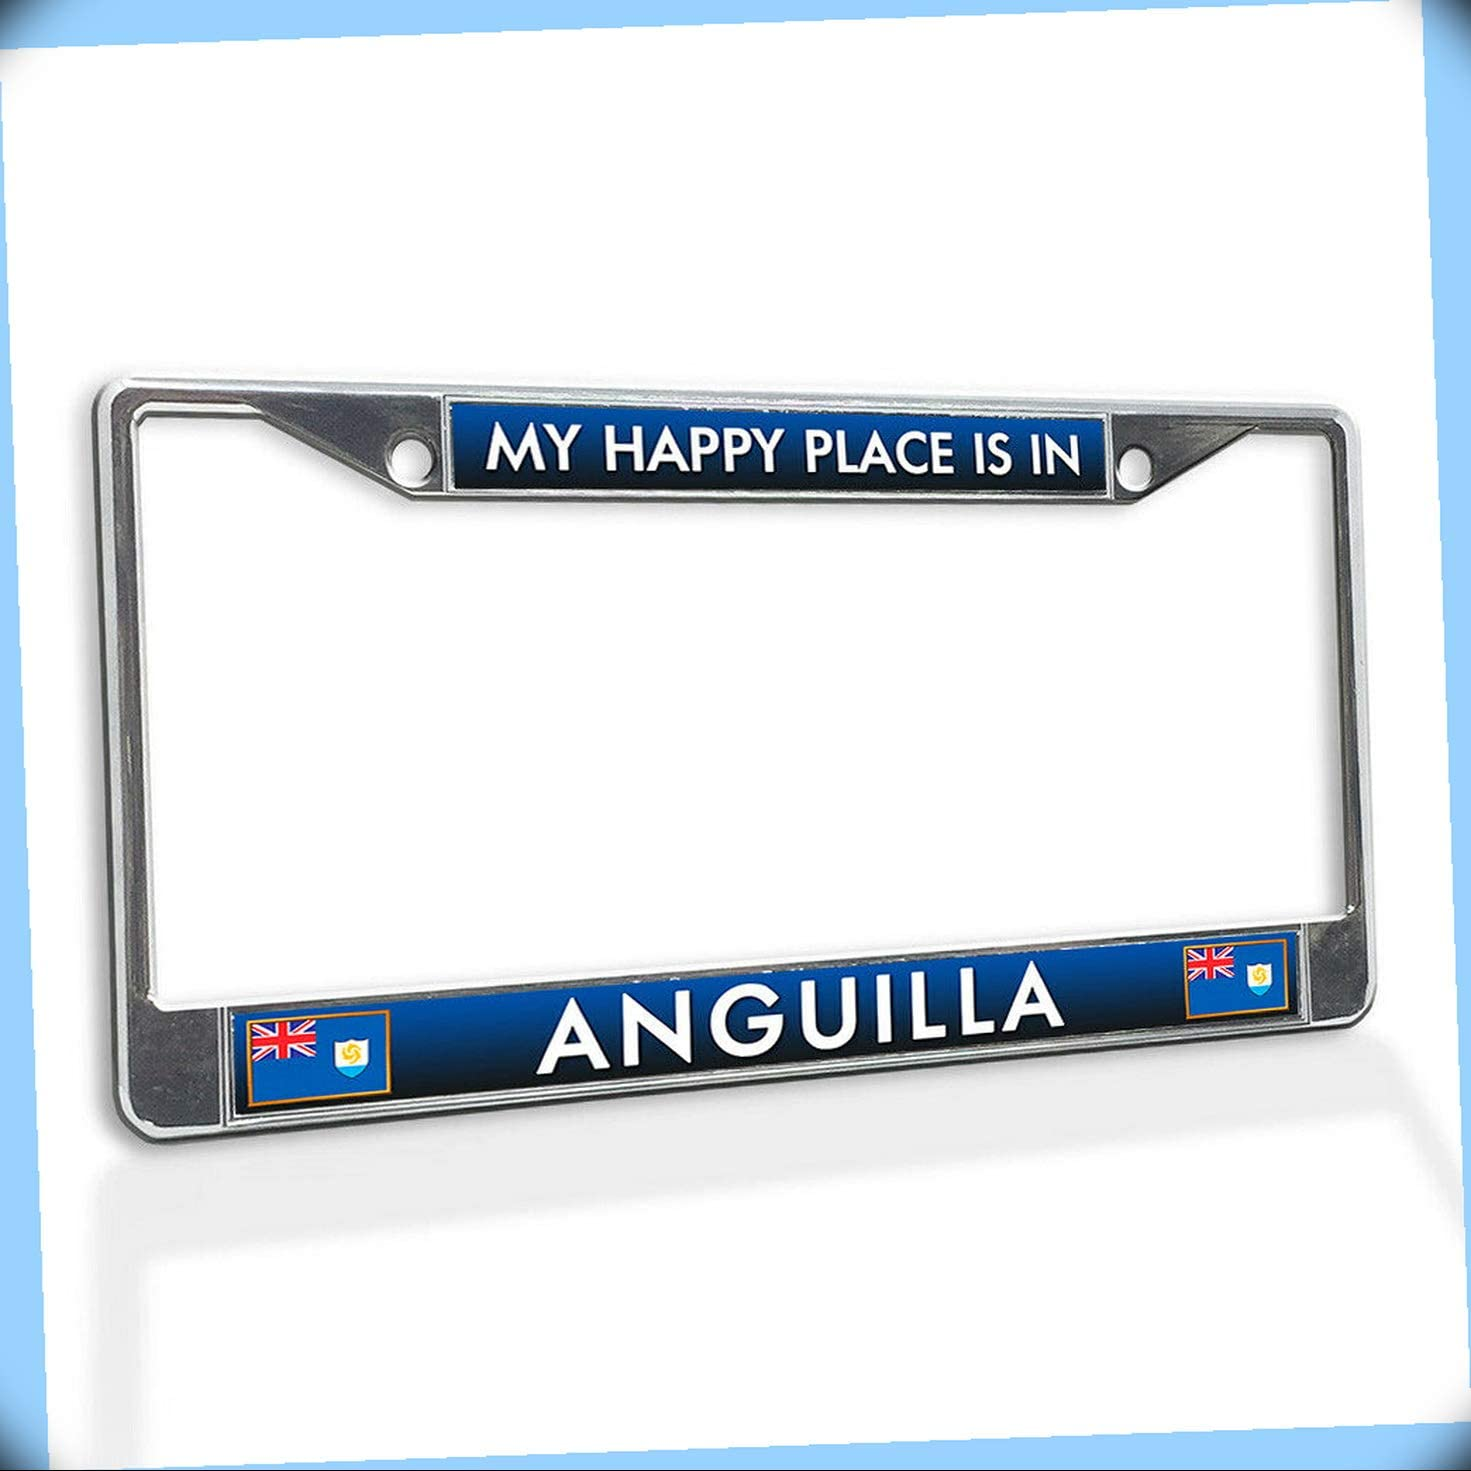 New Metal Opening Max 63% OFF large release sale Novelty Aluminum Alloy License Plate Inser Vinyl Frame